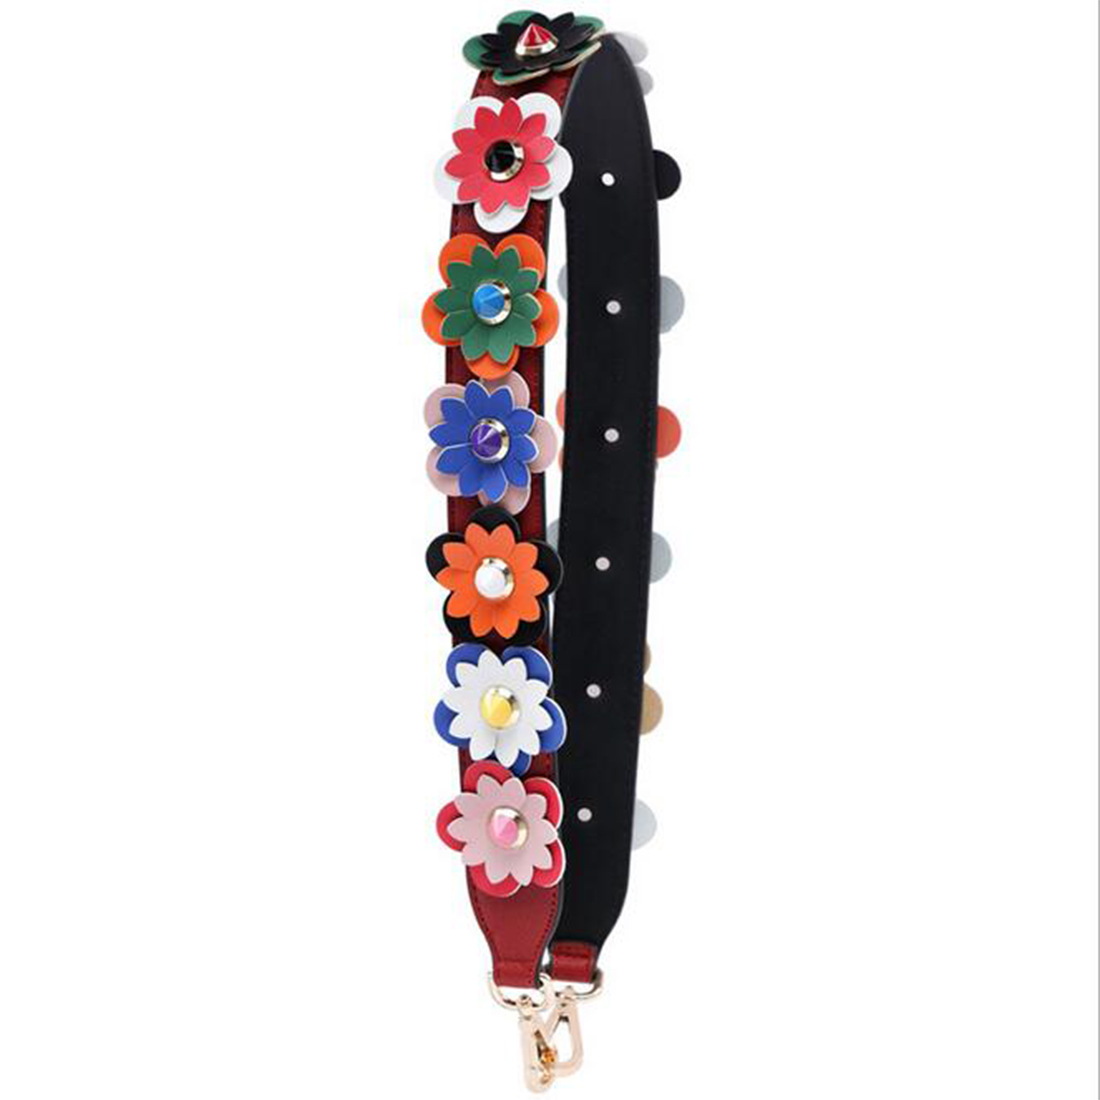 SFG HOUSE FASHION Flower All Matched Bag Strap Colorful Rivet Shoulder Straps Replacement Crossbody Strap Women Bags Accessories fashion house